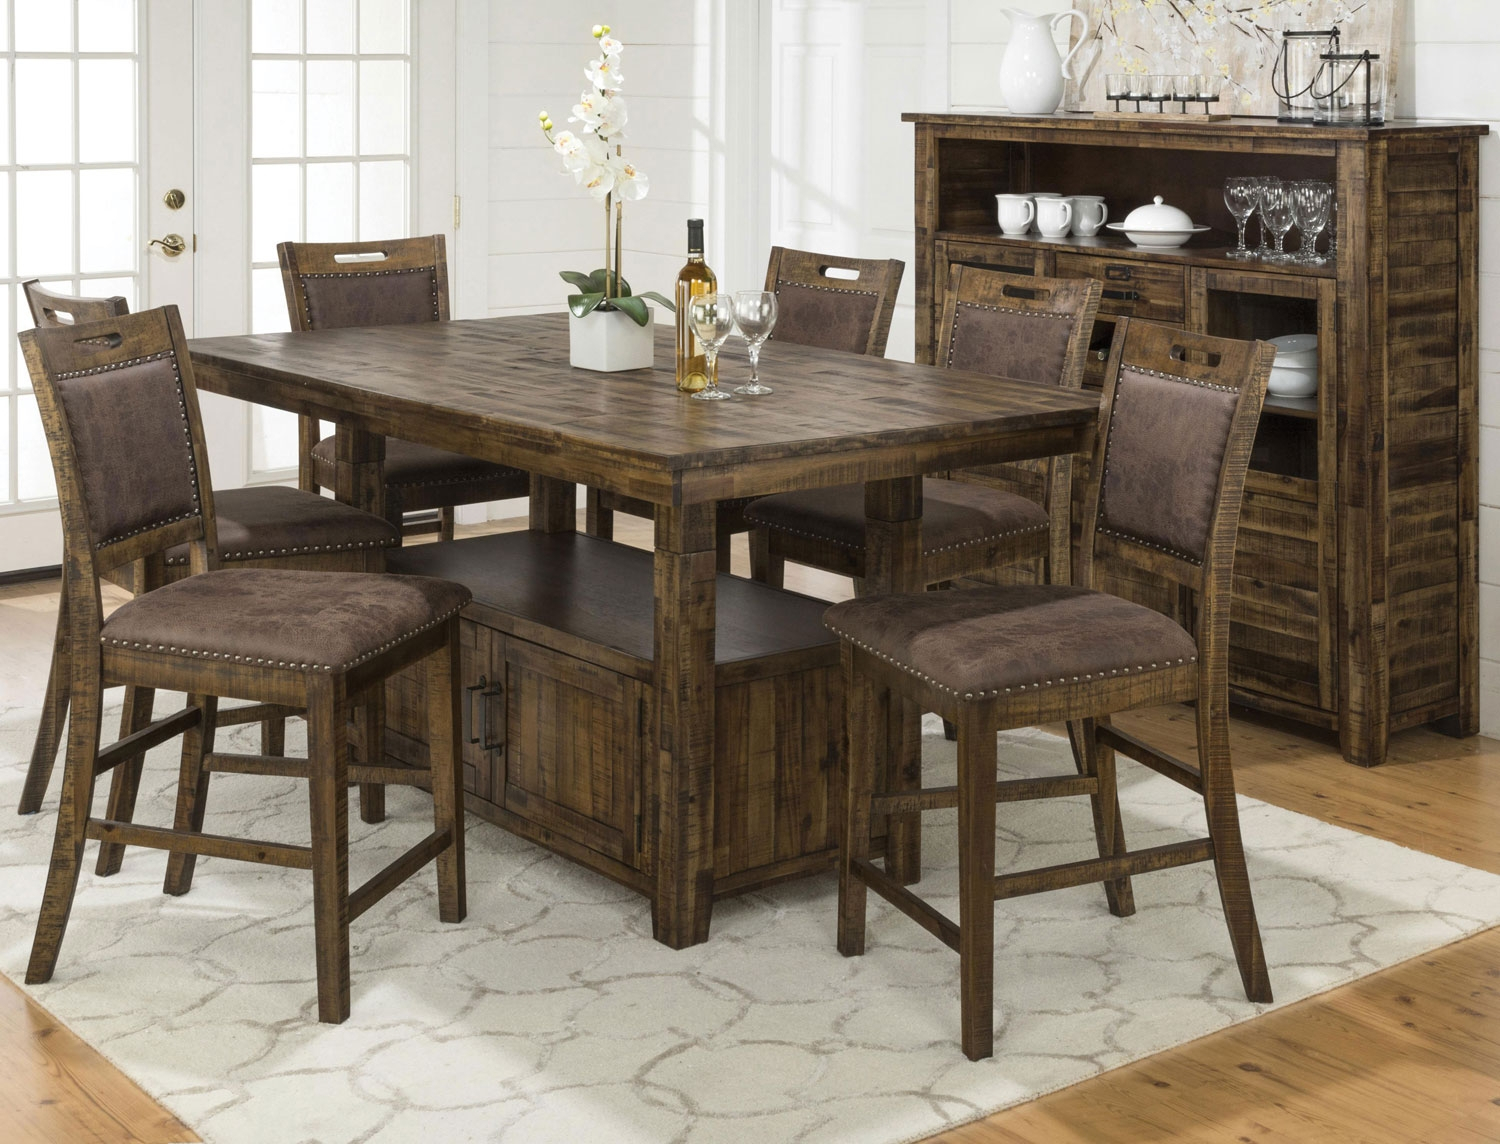 reign adjustable height table and 4 counter height chairs